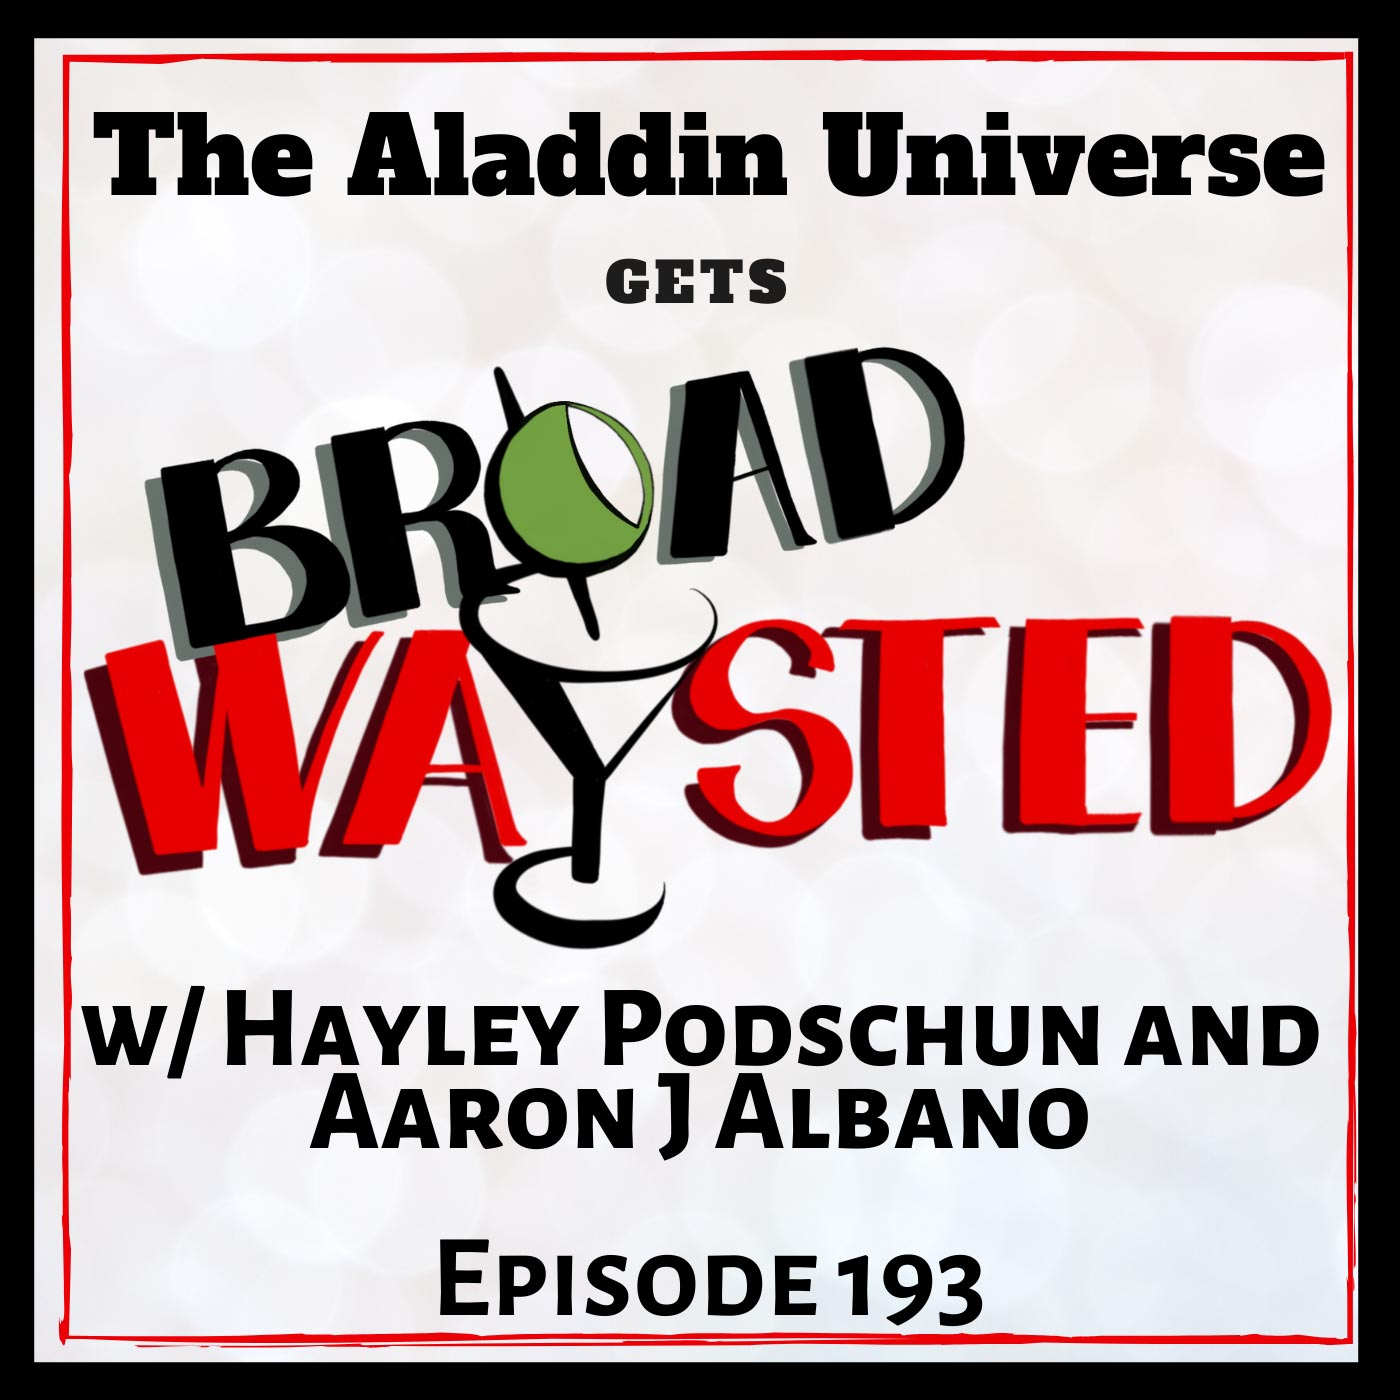 Broadwaysted Episode 193 Hayley Podschun, Aaron J Albano